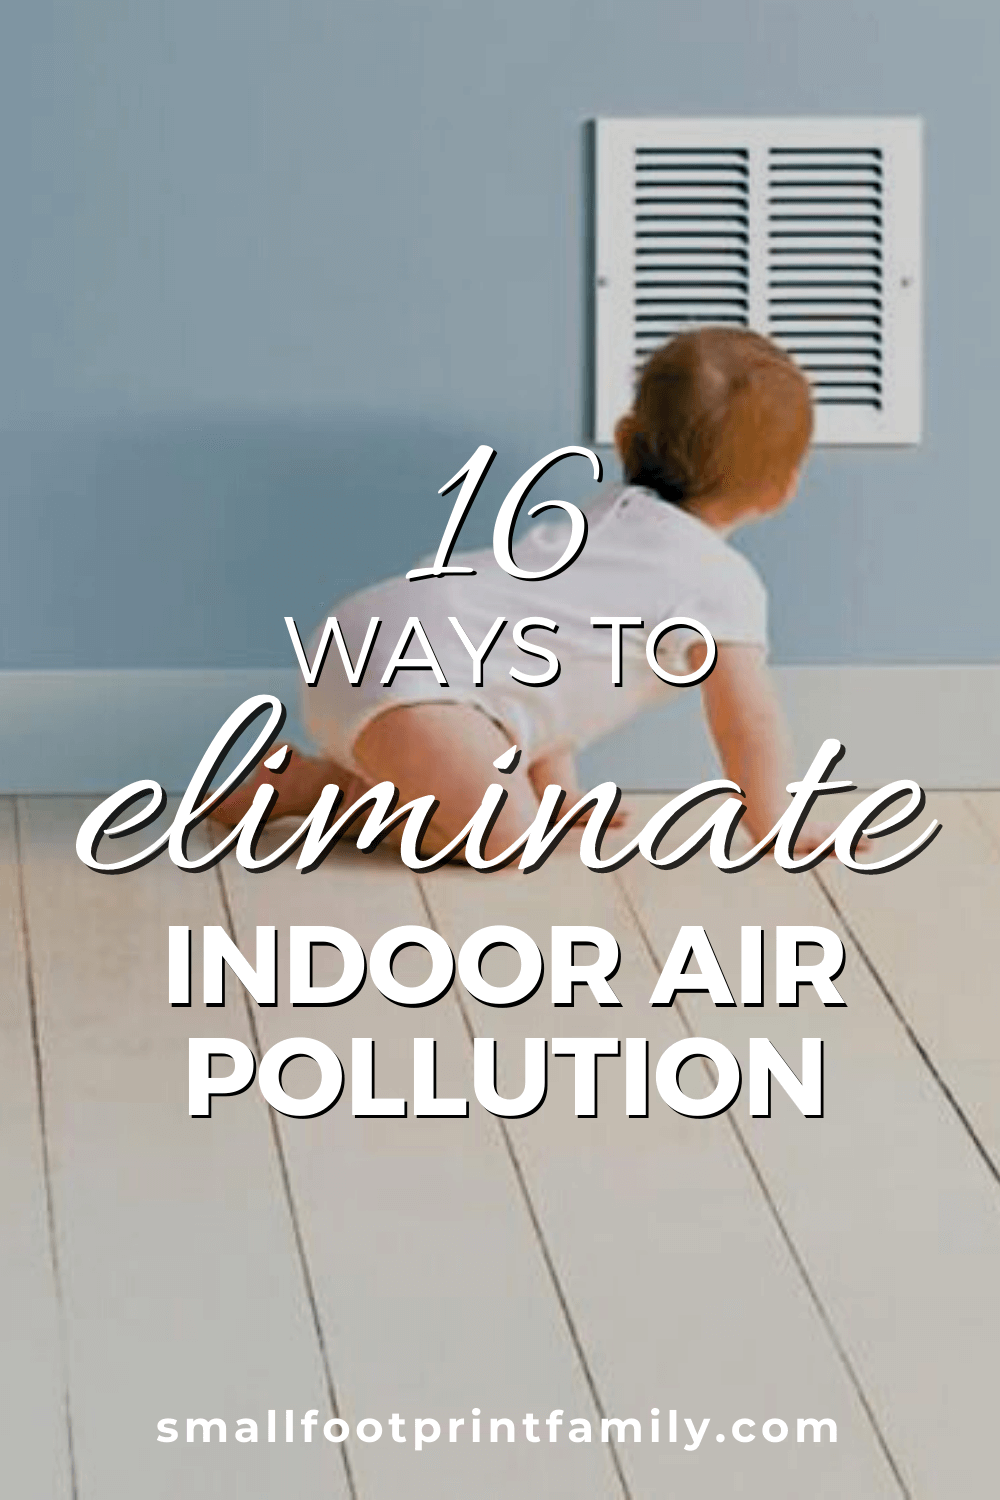 There are potential sources of air pollution in just about every room of your house, but don't despair. The good news is that there are easy, and affordable, solutions for most of them. Here are sixteen ways to improve the air quality inside your home or office.#greenliving #ecofriendly #cleanair #pollution #planetfriendly #green #breathefreely #asthma  #sustainability #gogreen #naturalliving #climatechange